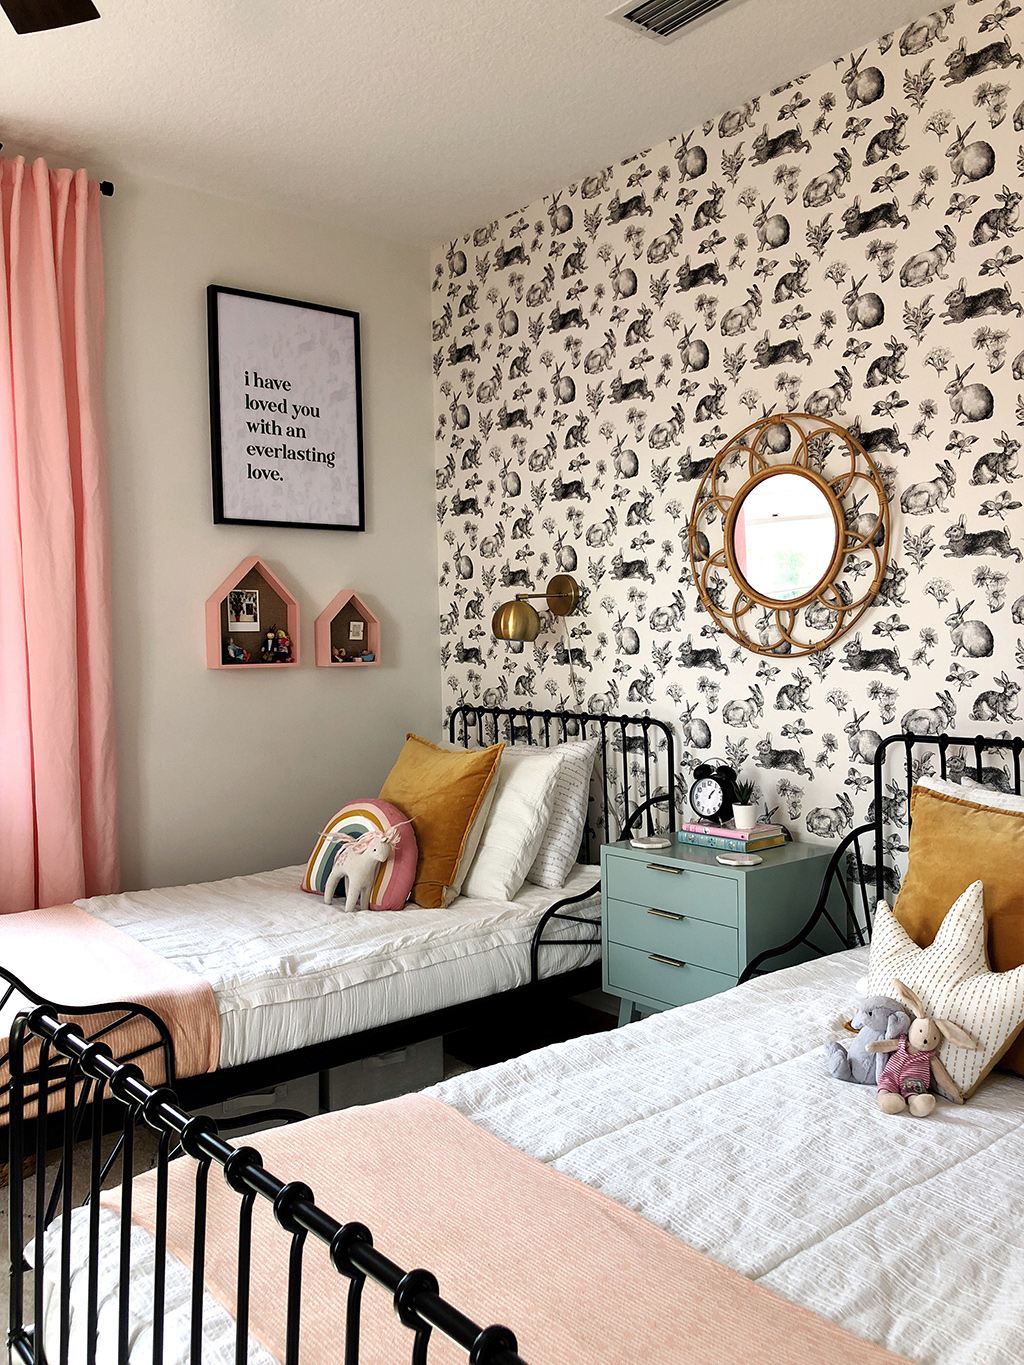 twin beds with white bedding and rabbit wallpaper